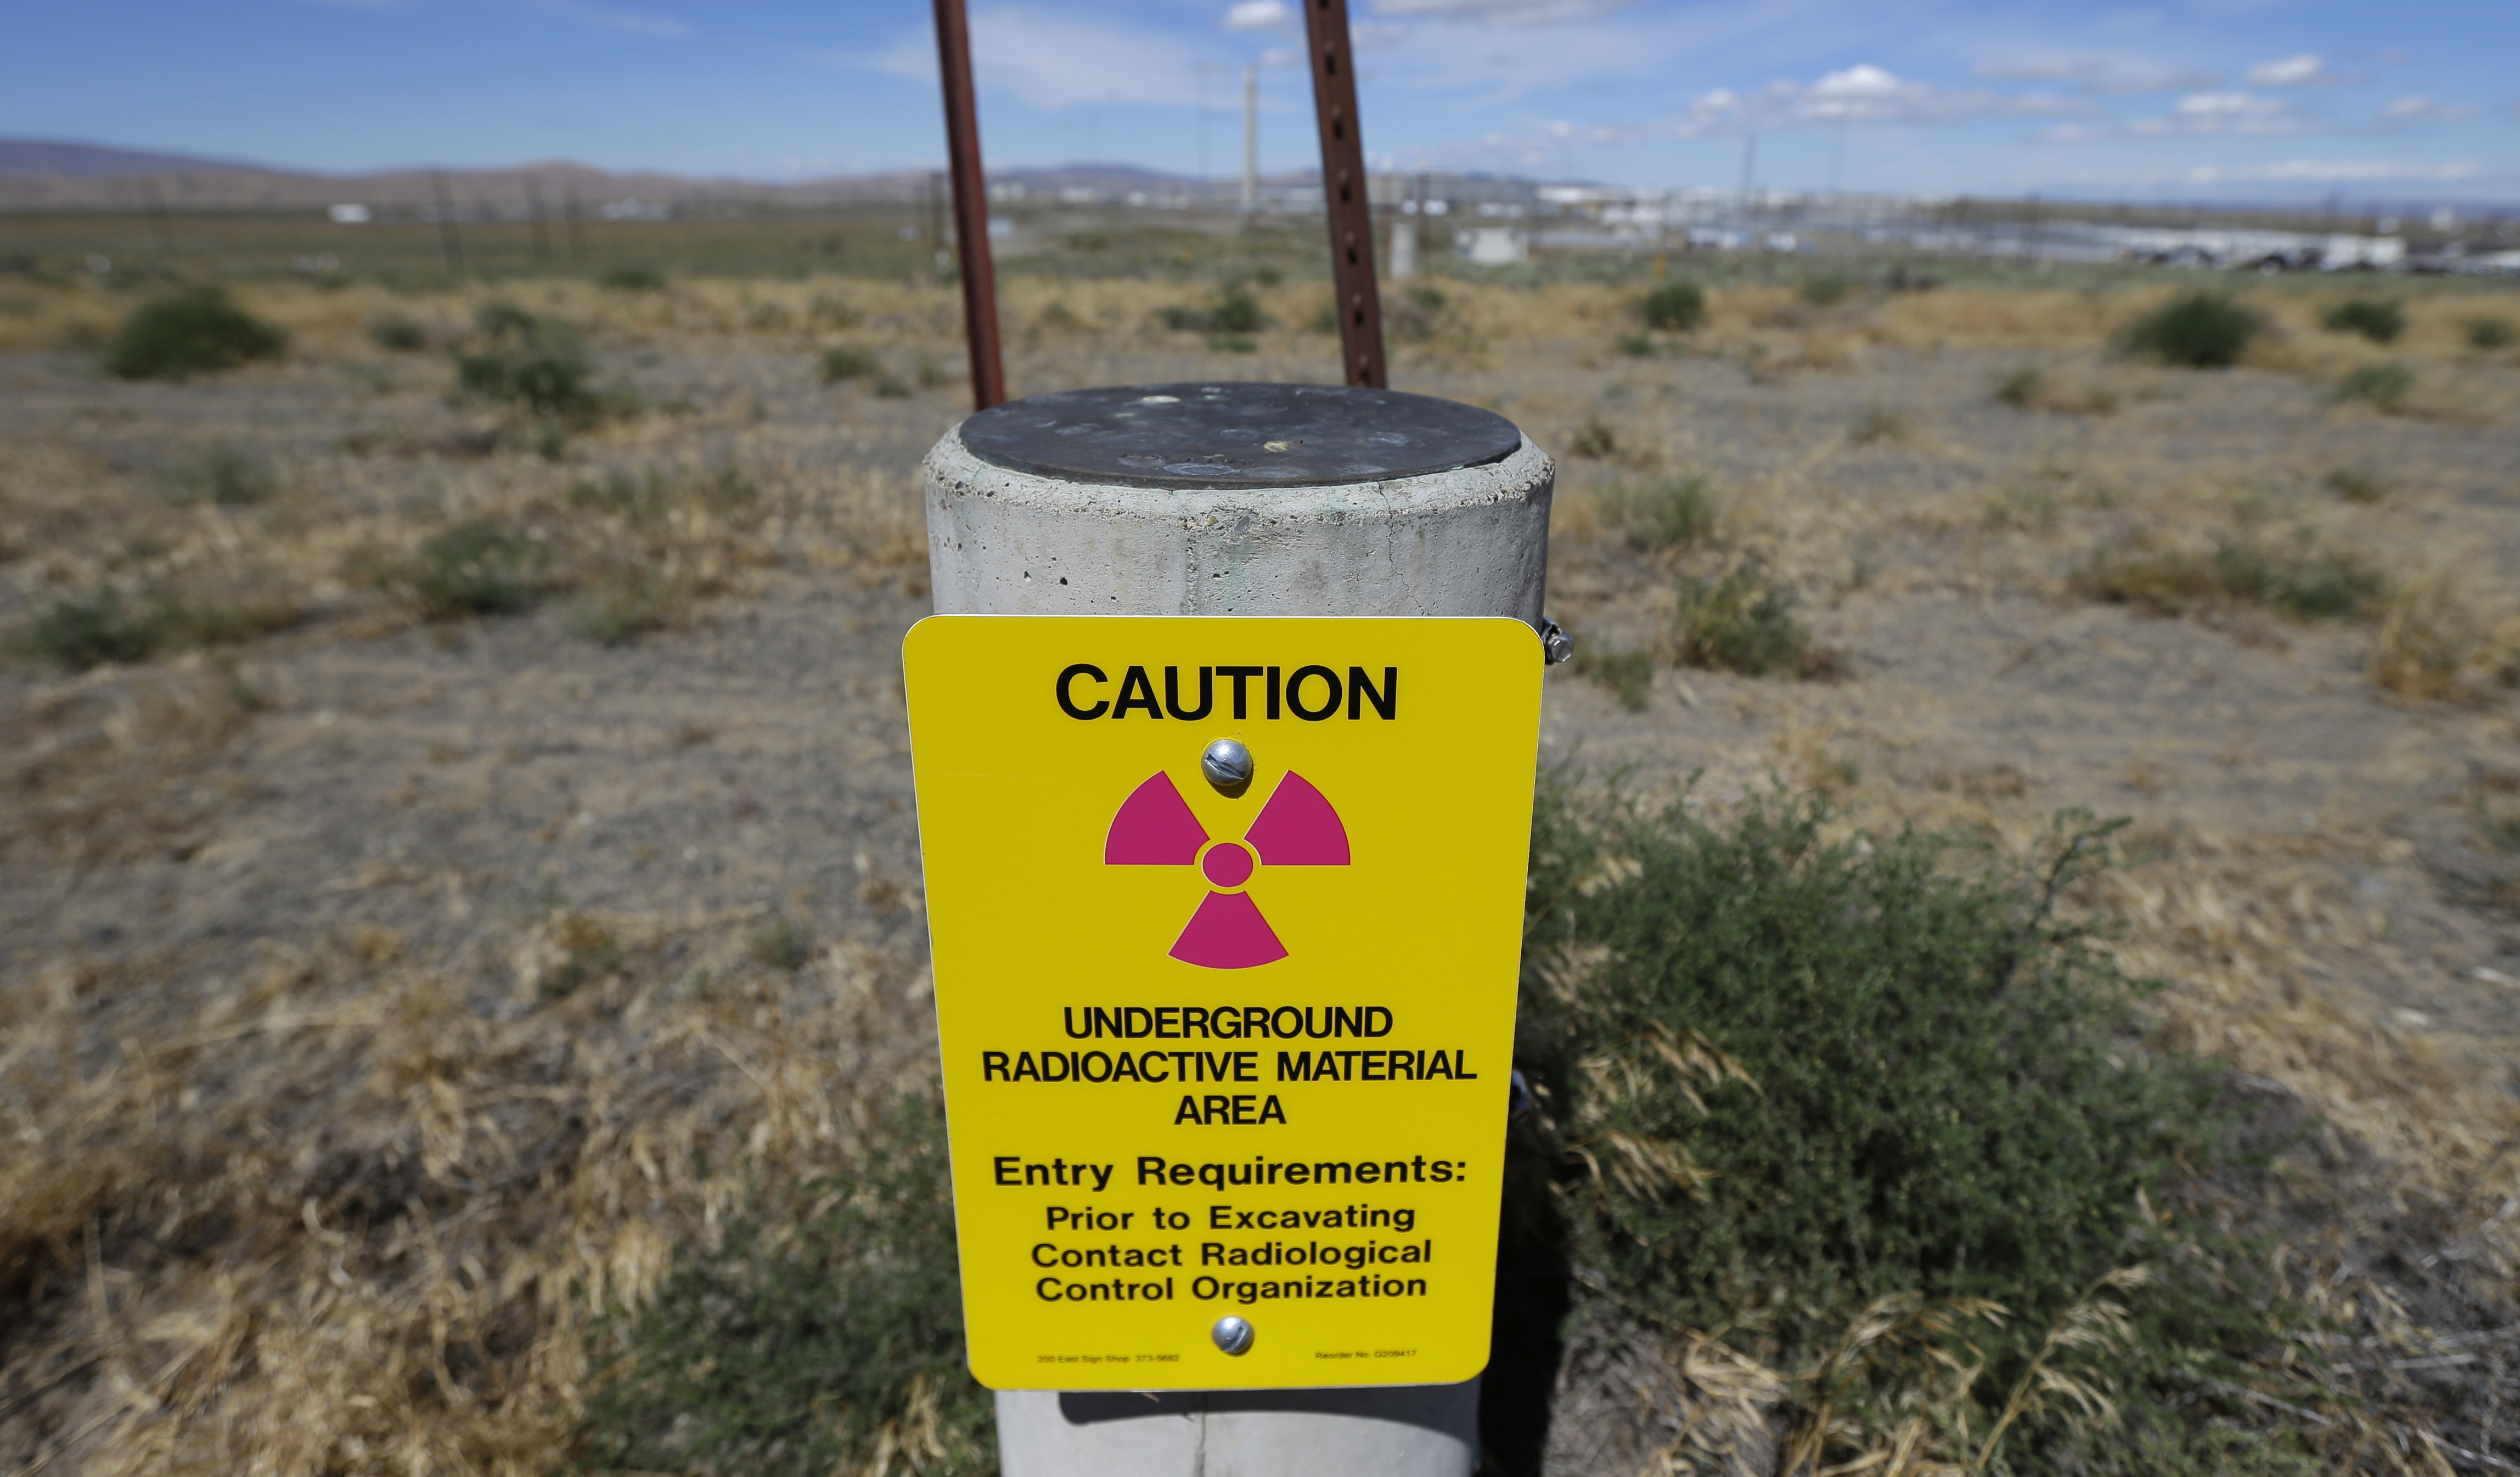 Hanford Nuclear Waste In this photo taken July 11, 2016, a sign warns of radioactive material stored underground on the Hanford Nuclear Reservation near Richland, Wash. The U.S. Energy Department's top official at Washington state's severely contaminated nuclear reservation says future accidental nuclear radiation releases are likely because of aging site infrastructure and inadequate cleanup funding. Hundreds were evacuated May 9, 2017 when the roof of a 1950s rail tunnel storing a lethal mix of waste from plutonium production collapsed. Tests show no radiation was released. (AP Photo/Ted S. Warren)